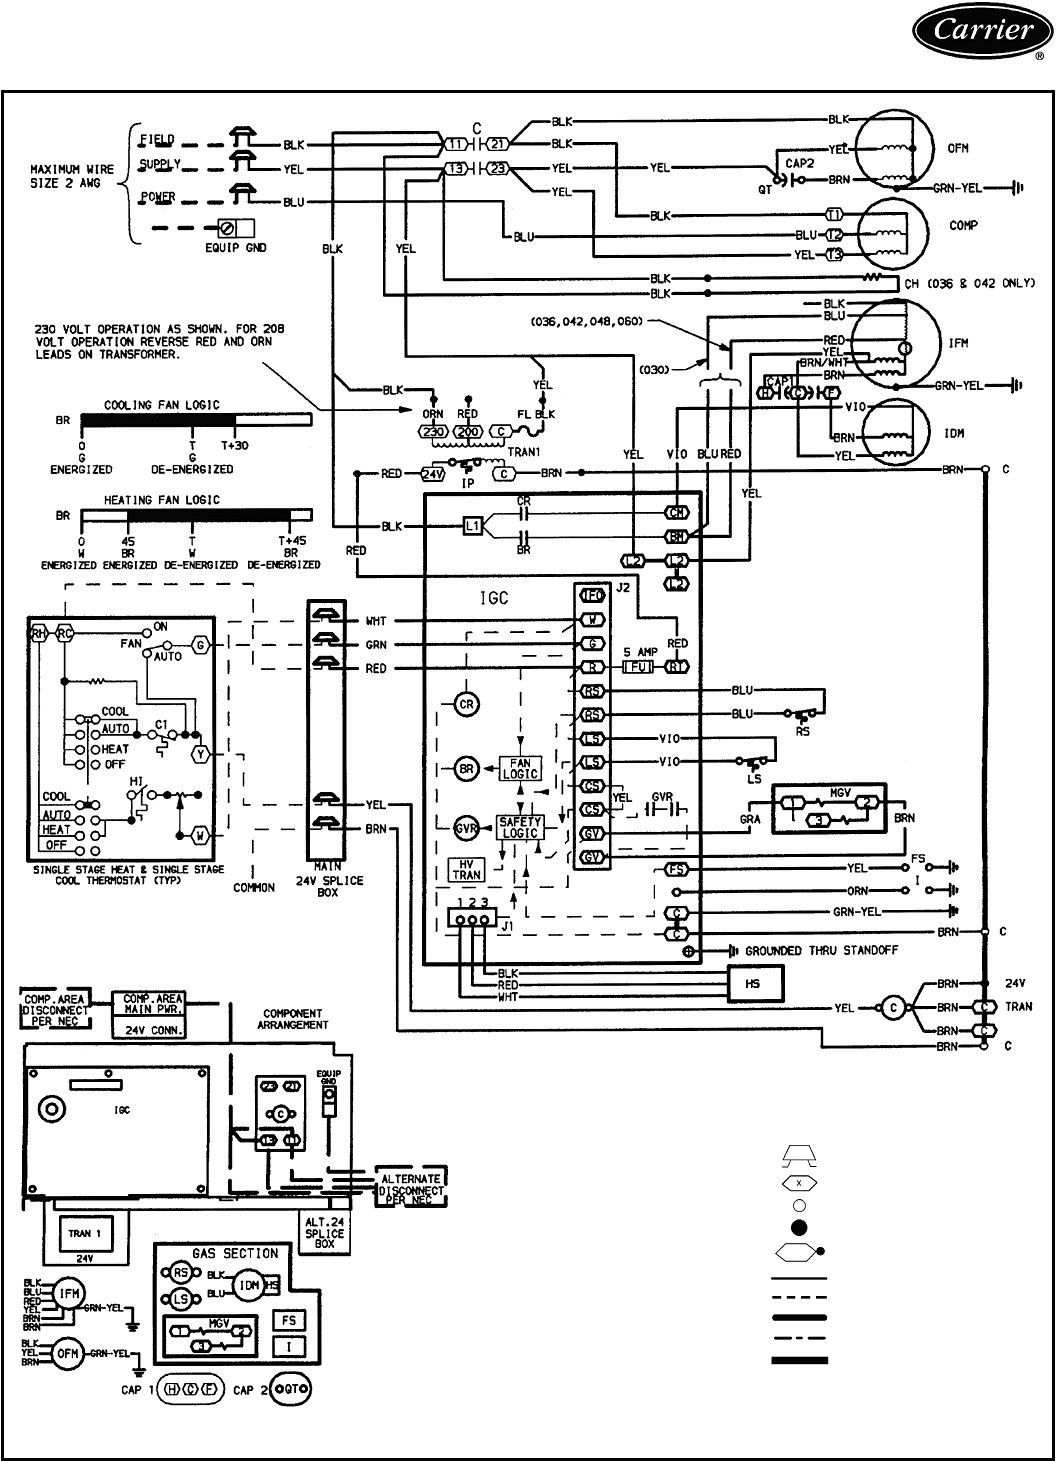 carrier air conditioner capacitor wiring diagram lima bean dissection a c condenser library